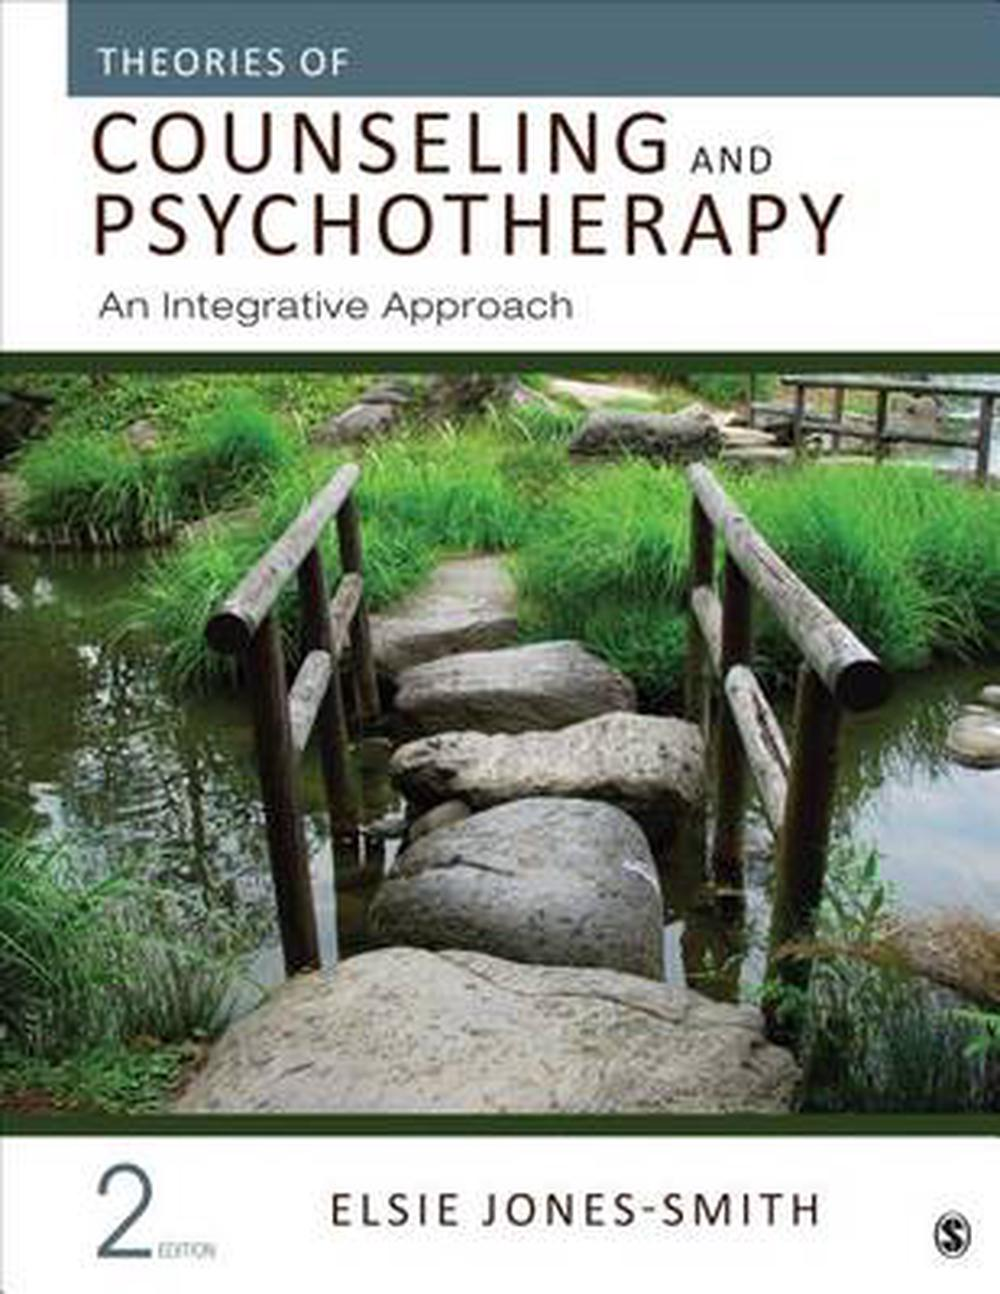 Theories of Counseling and Psychotherapy, 2nd Edition